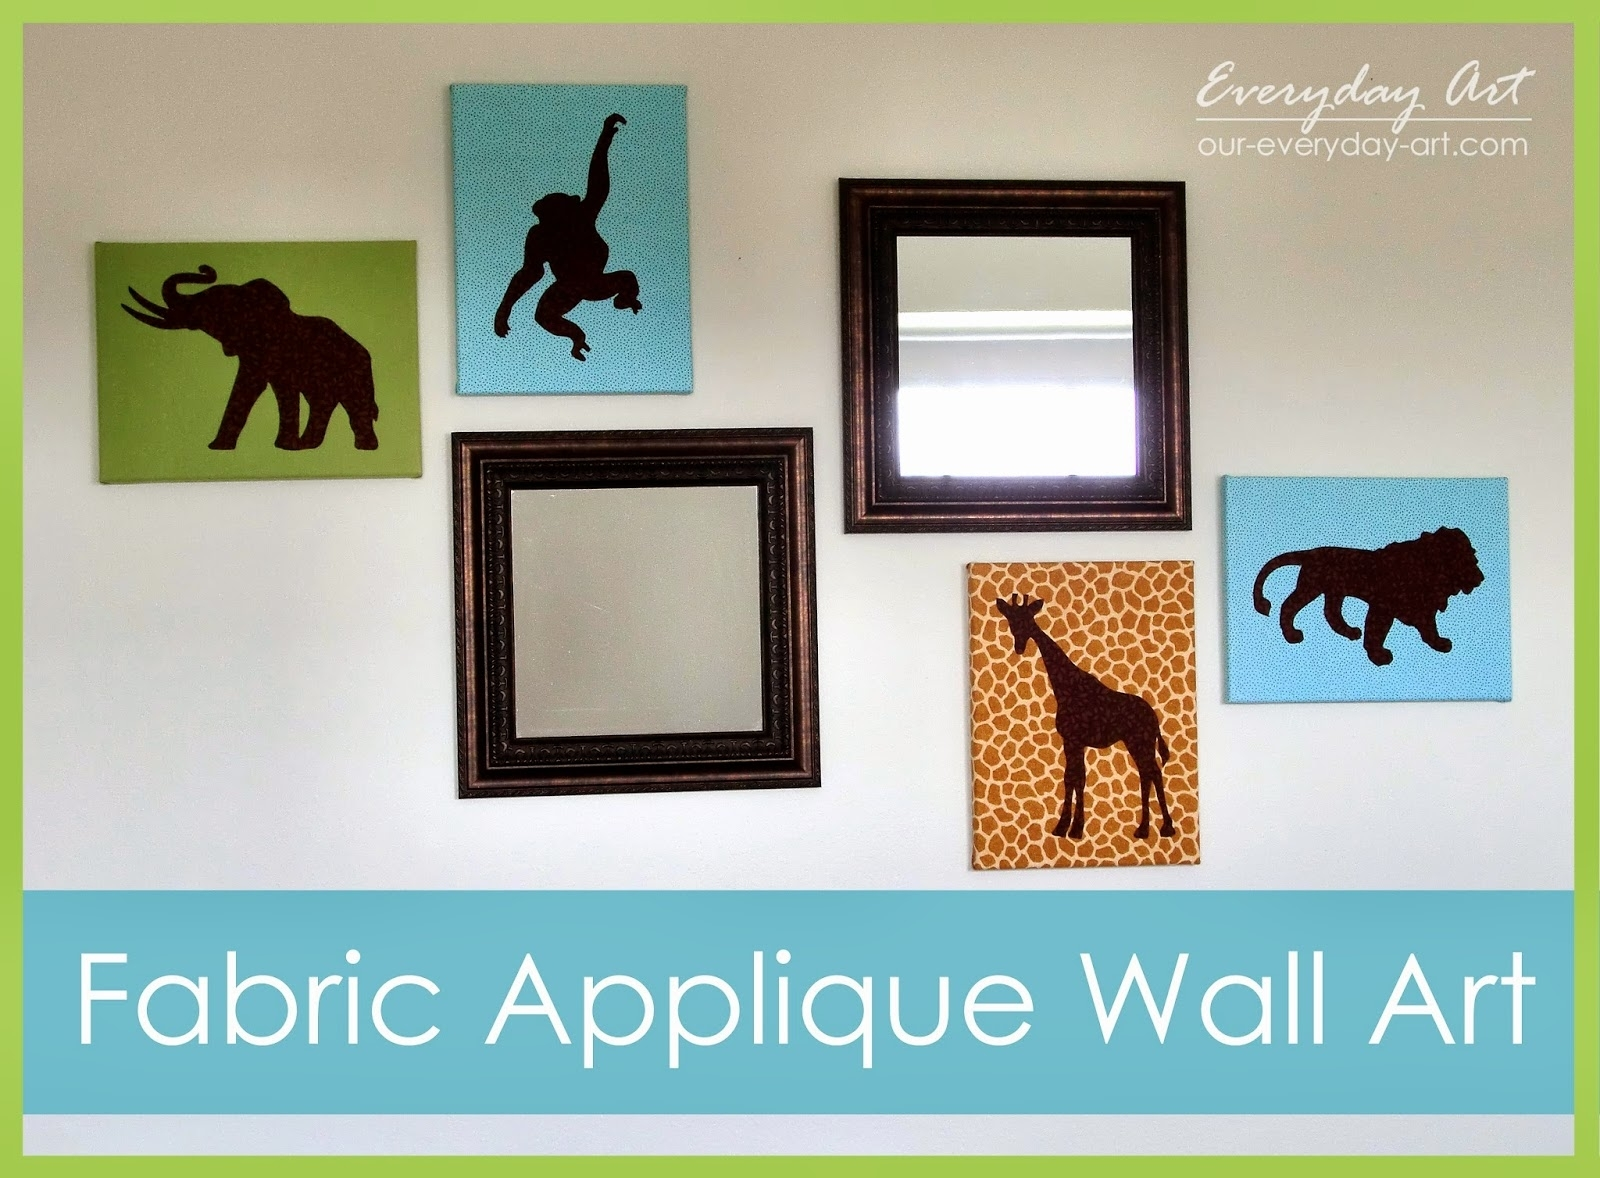 Everyday Art: Fabric Applique Wall Art For Recent Fabric Applique Wall Art (View 9 of 15)